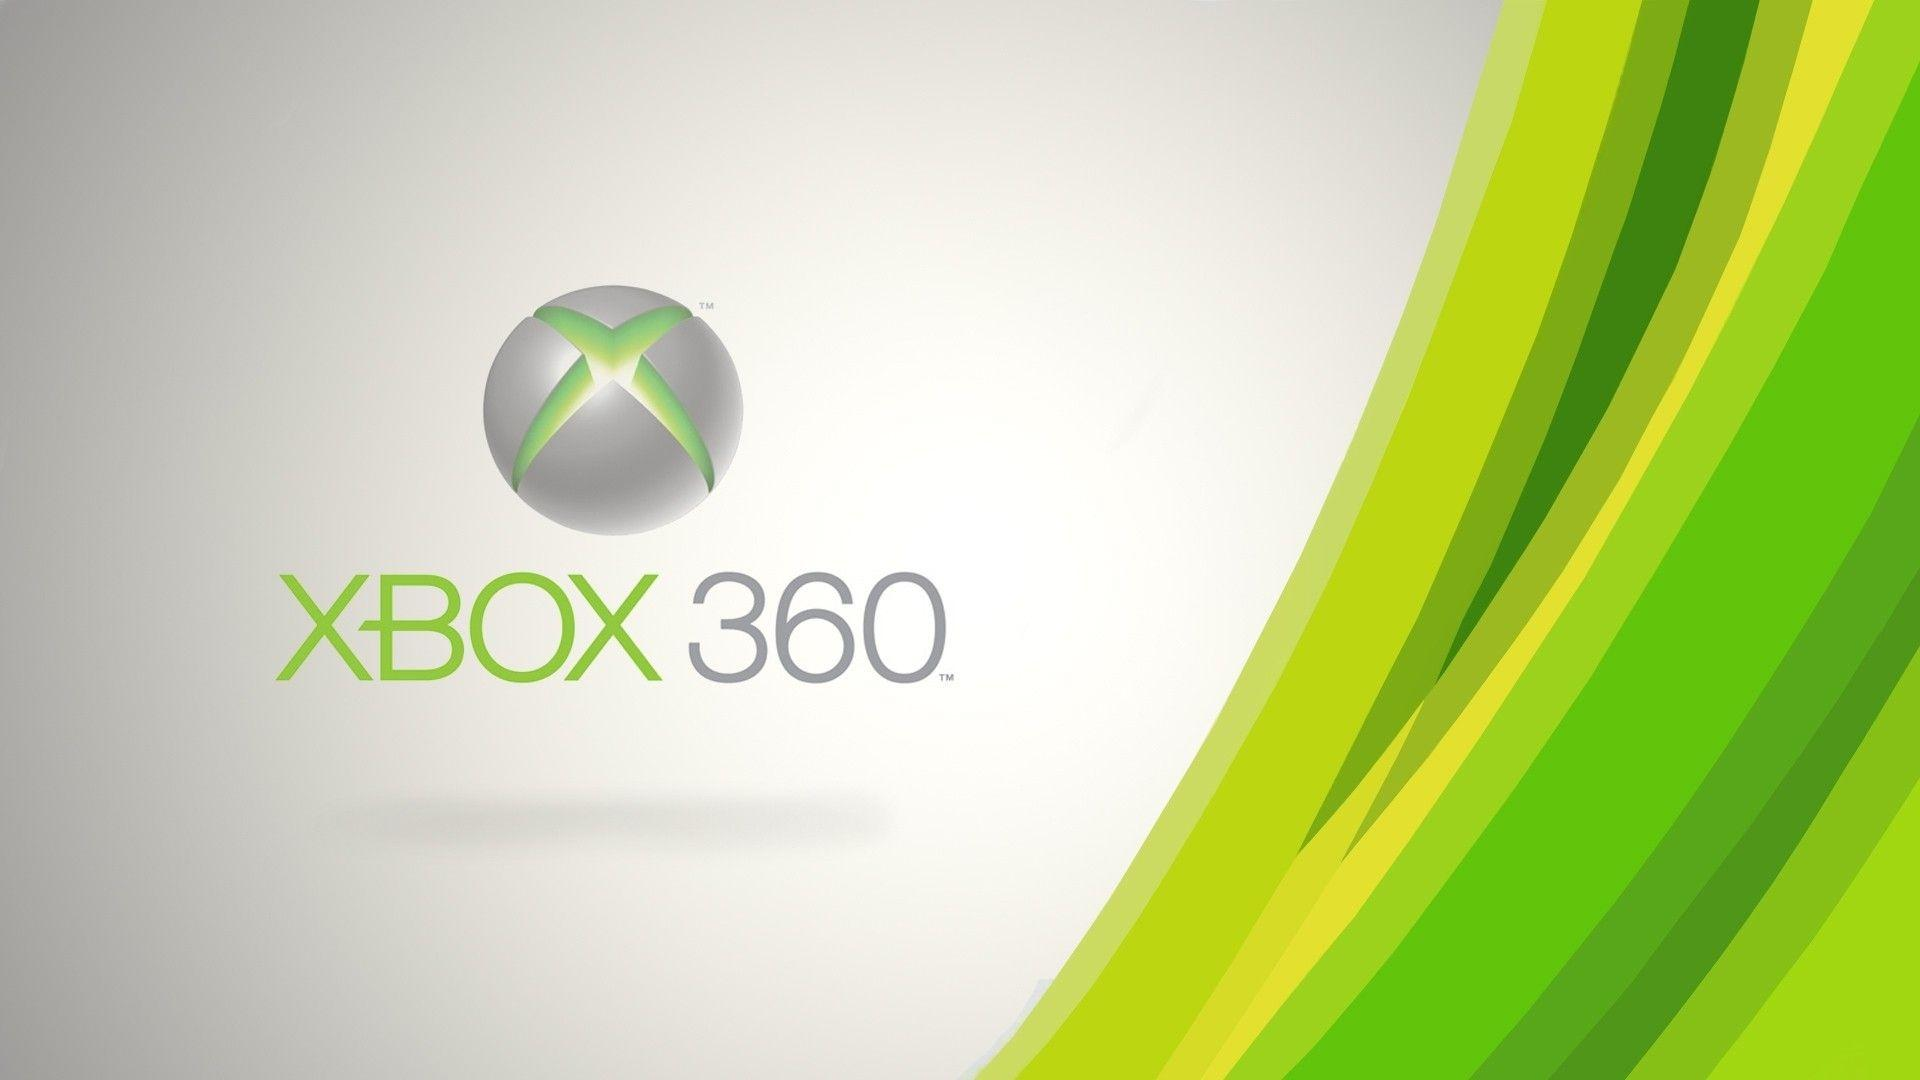 Xbox 360 Backgrounds Wallpaper Cave